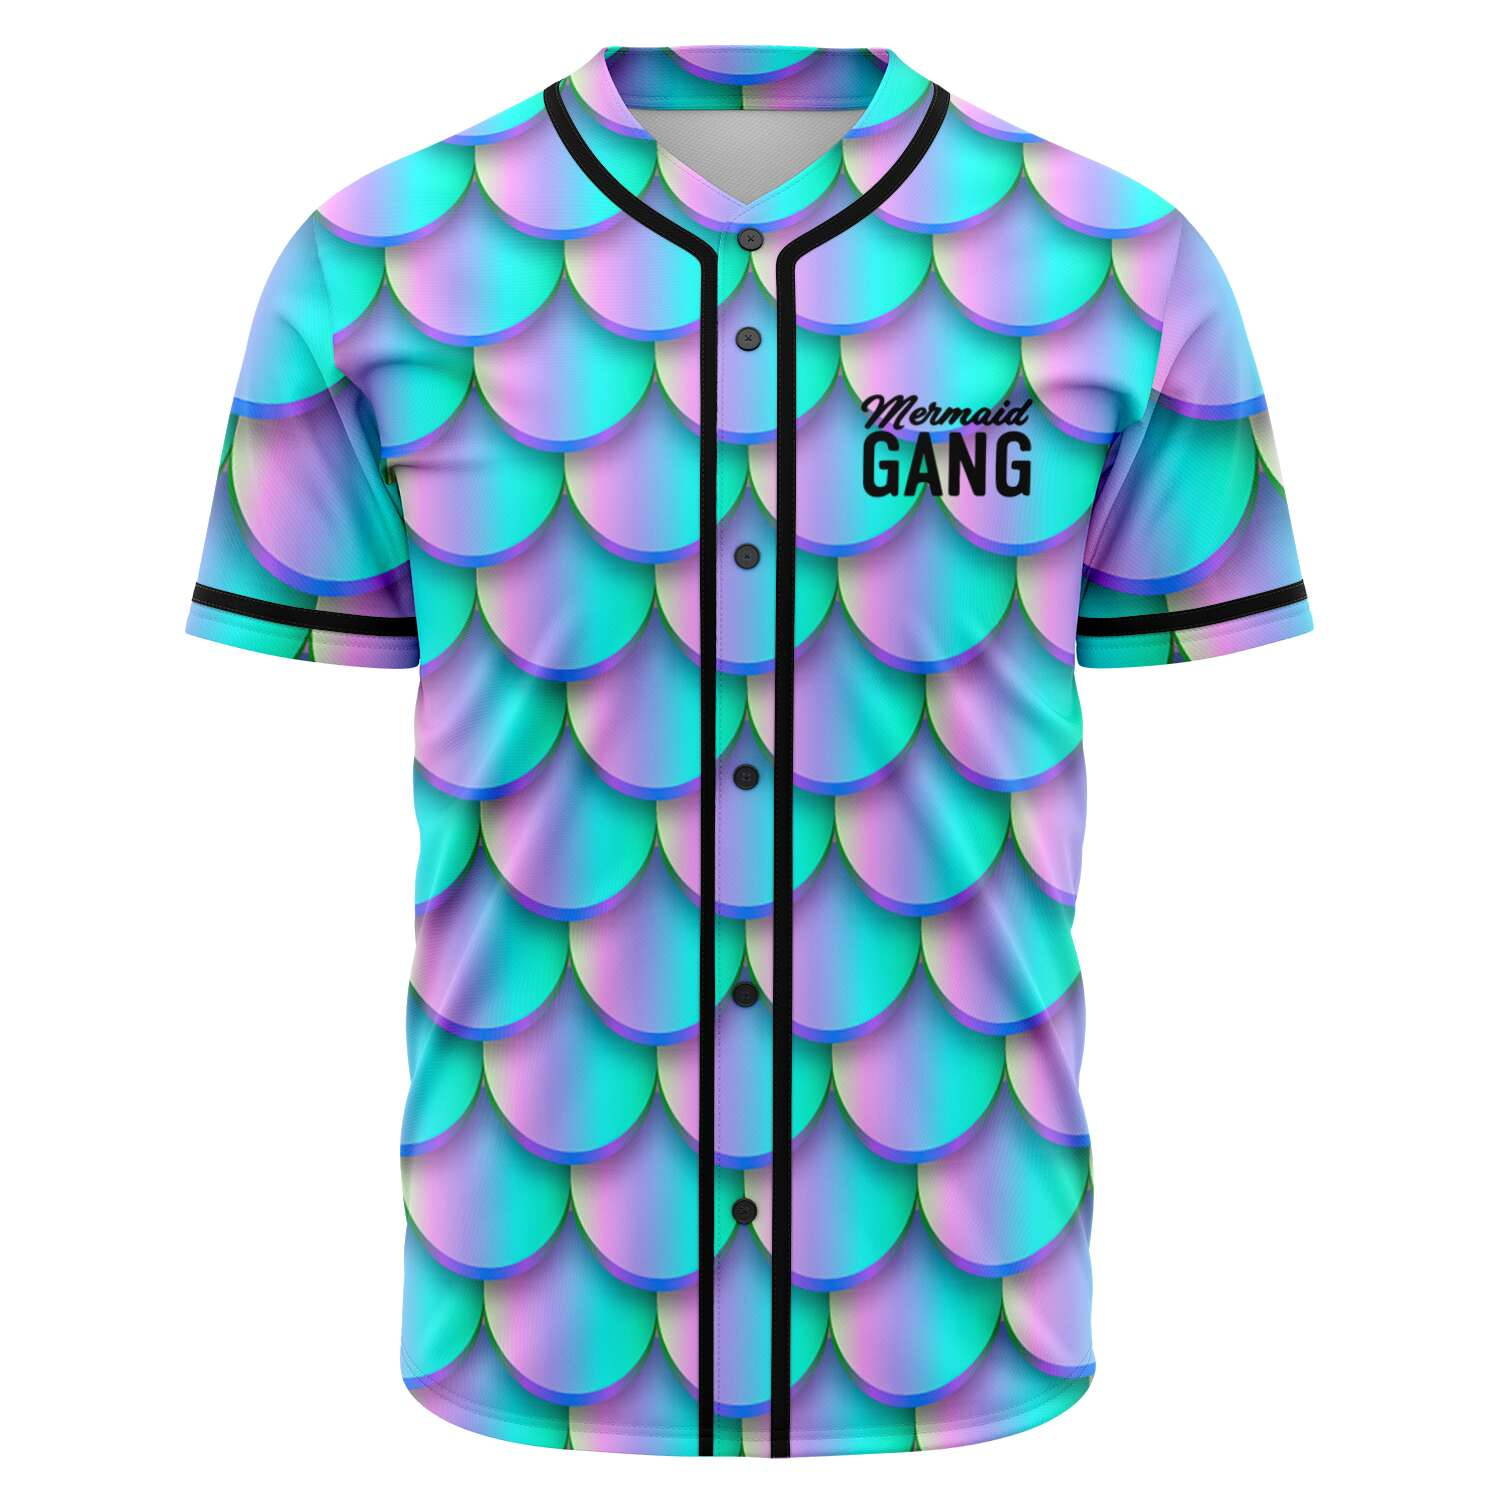 MERMAID GANG JERSEY